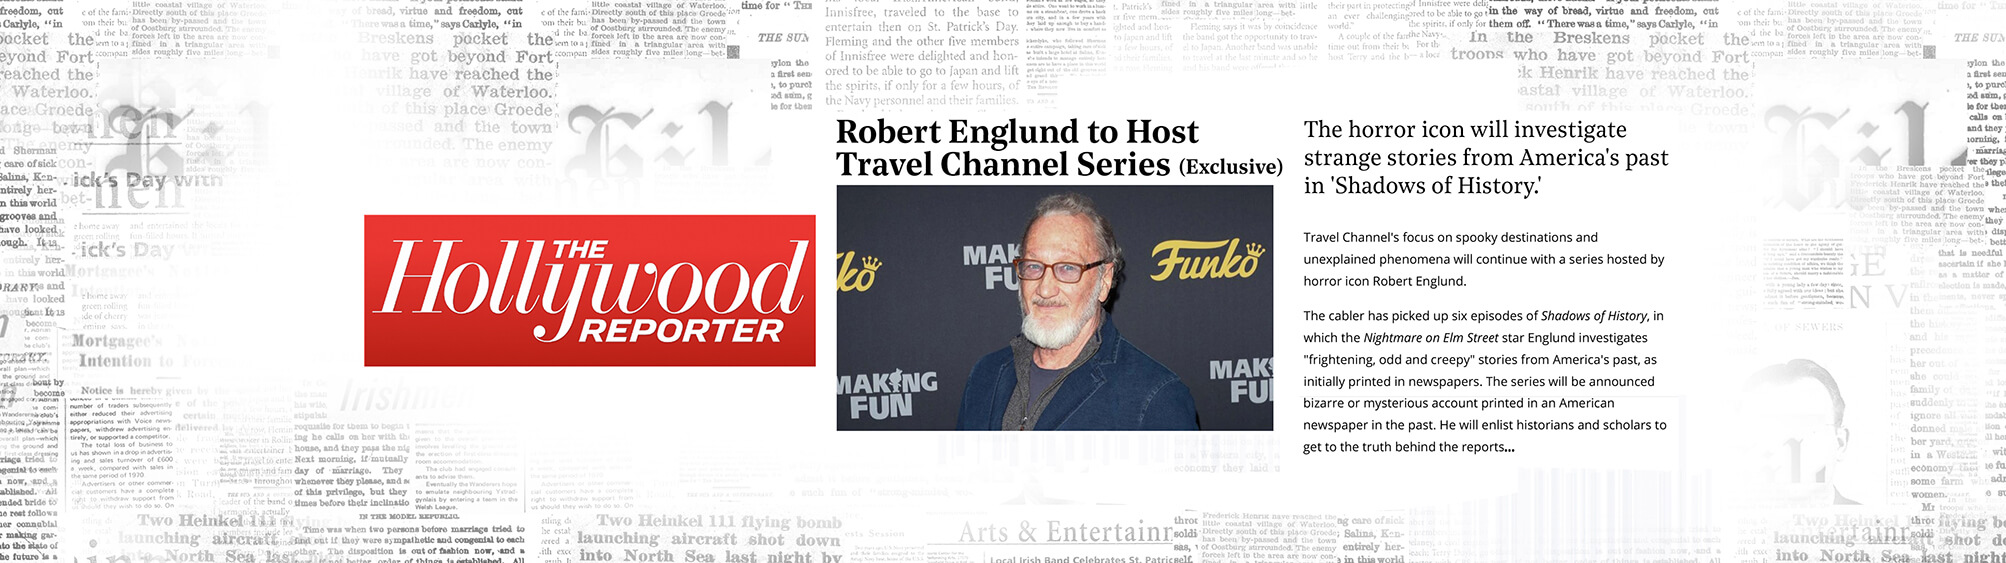 Robert Englund Hollywood Reporter Smalle